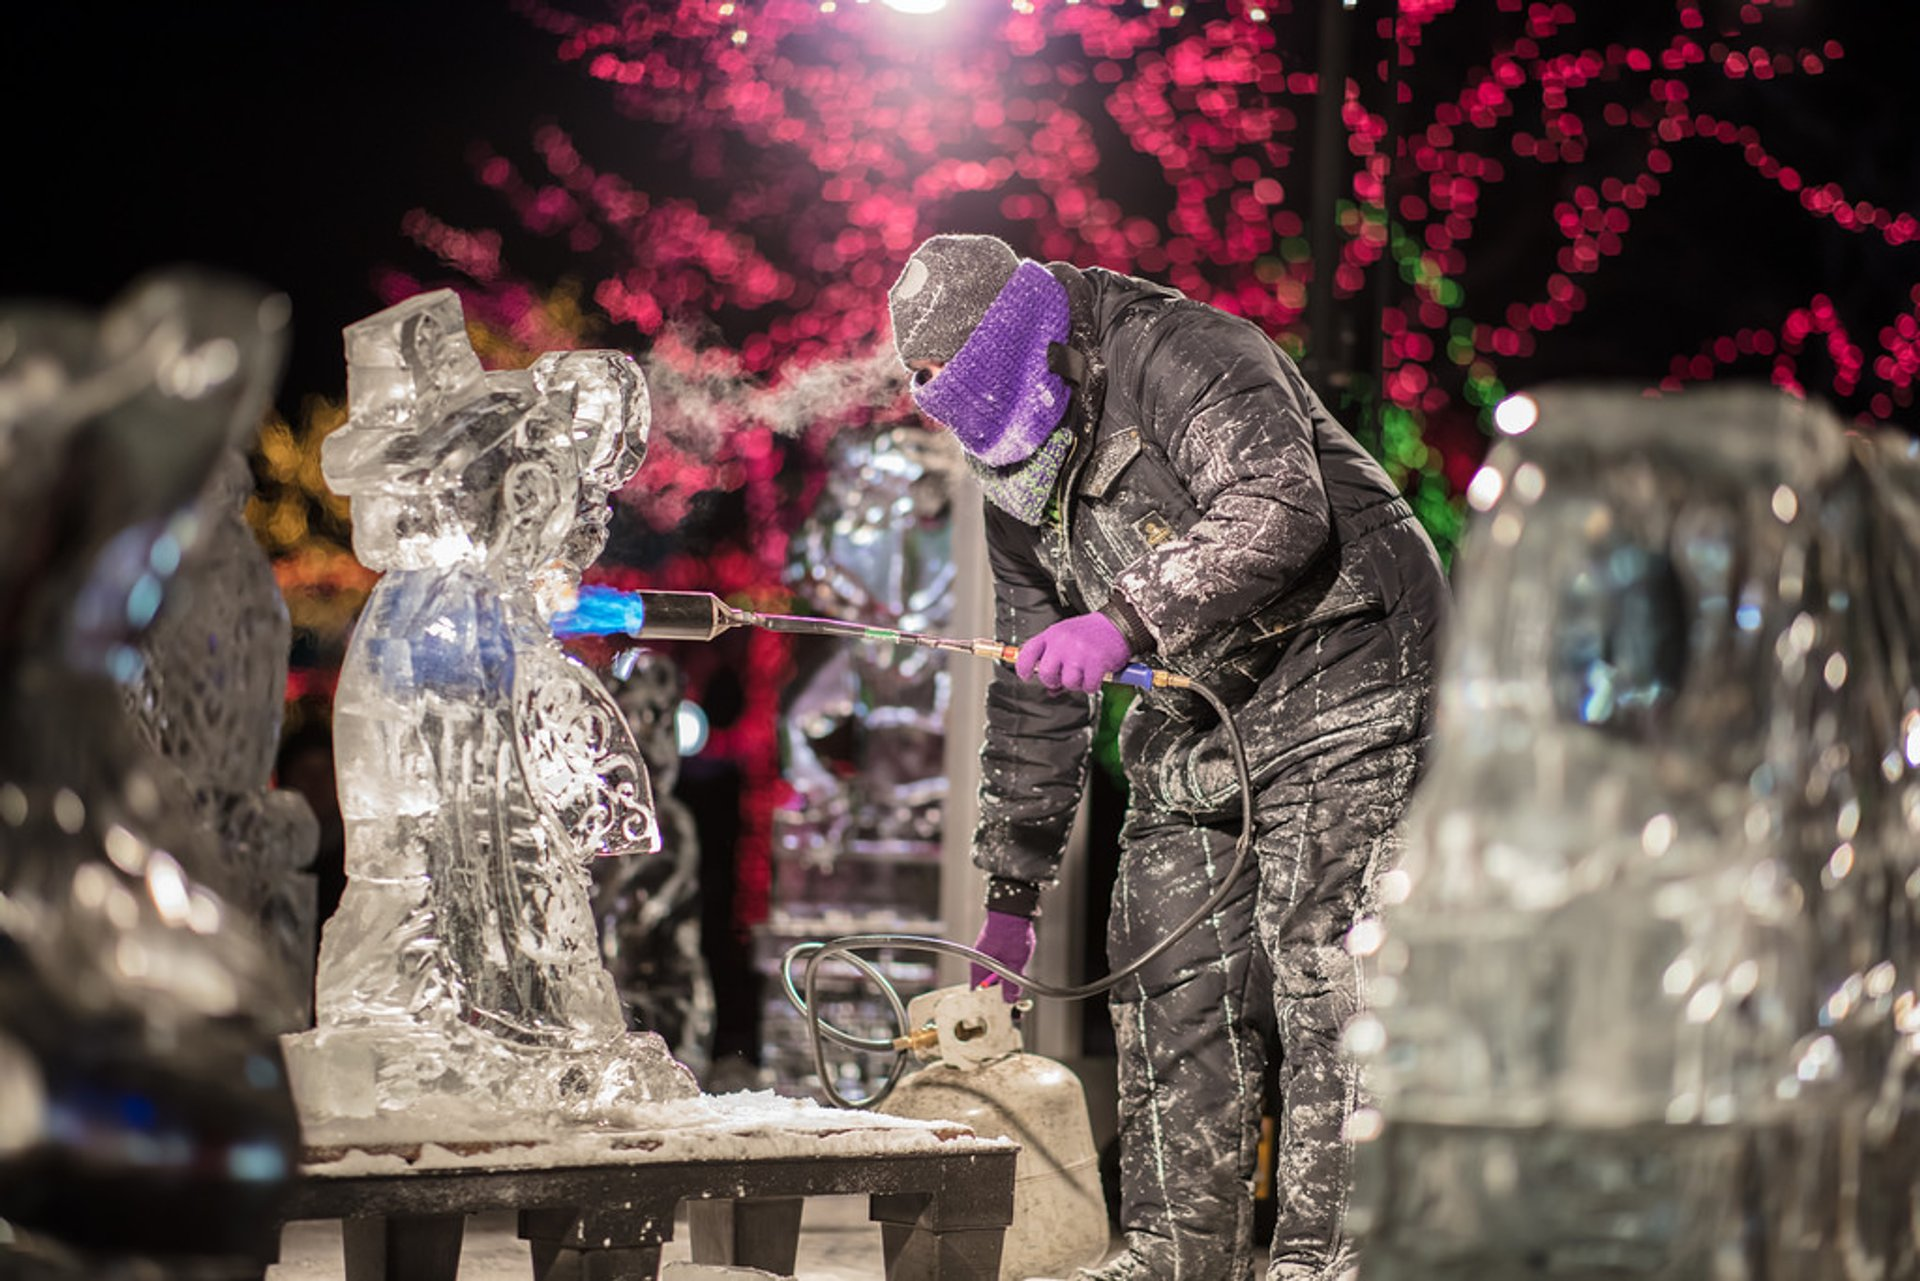 Zoolights Ice Sculptures Show in Lincoln Park Zoo 2020